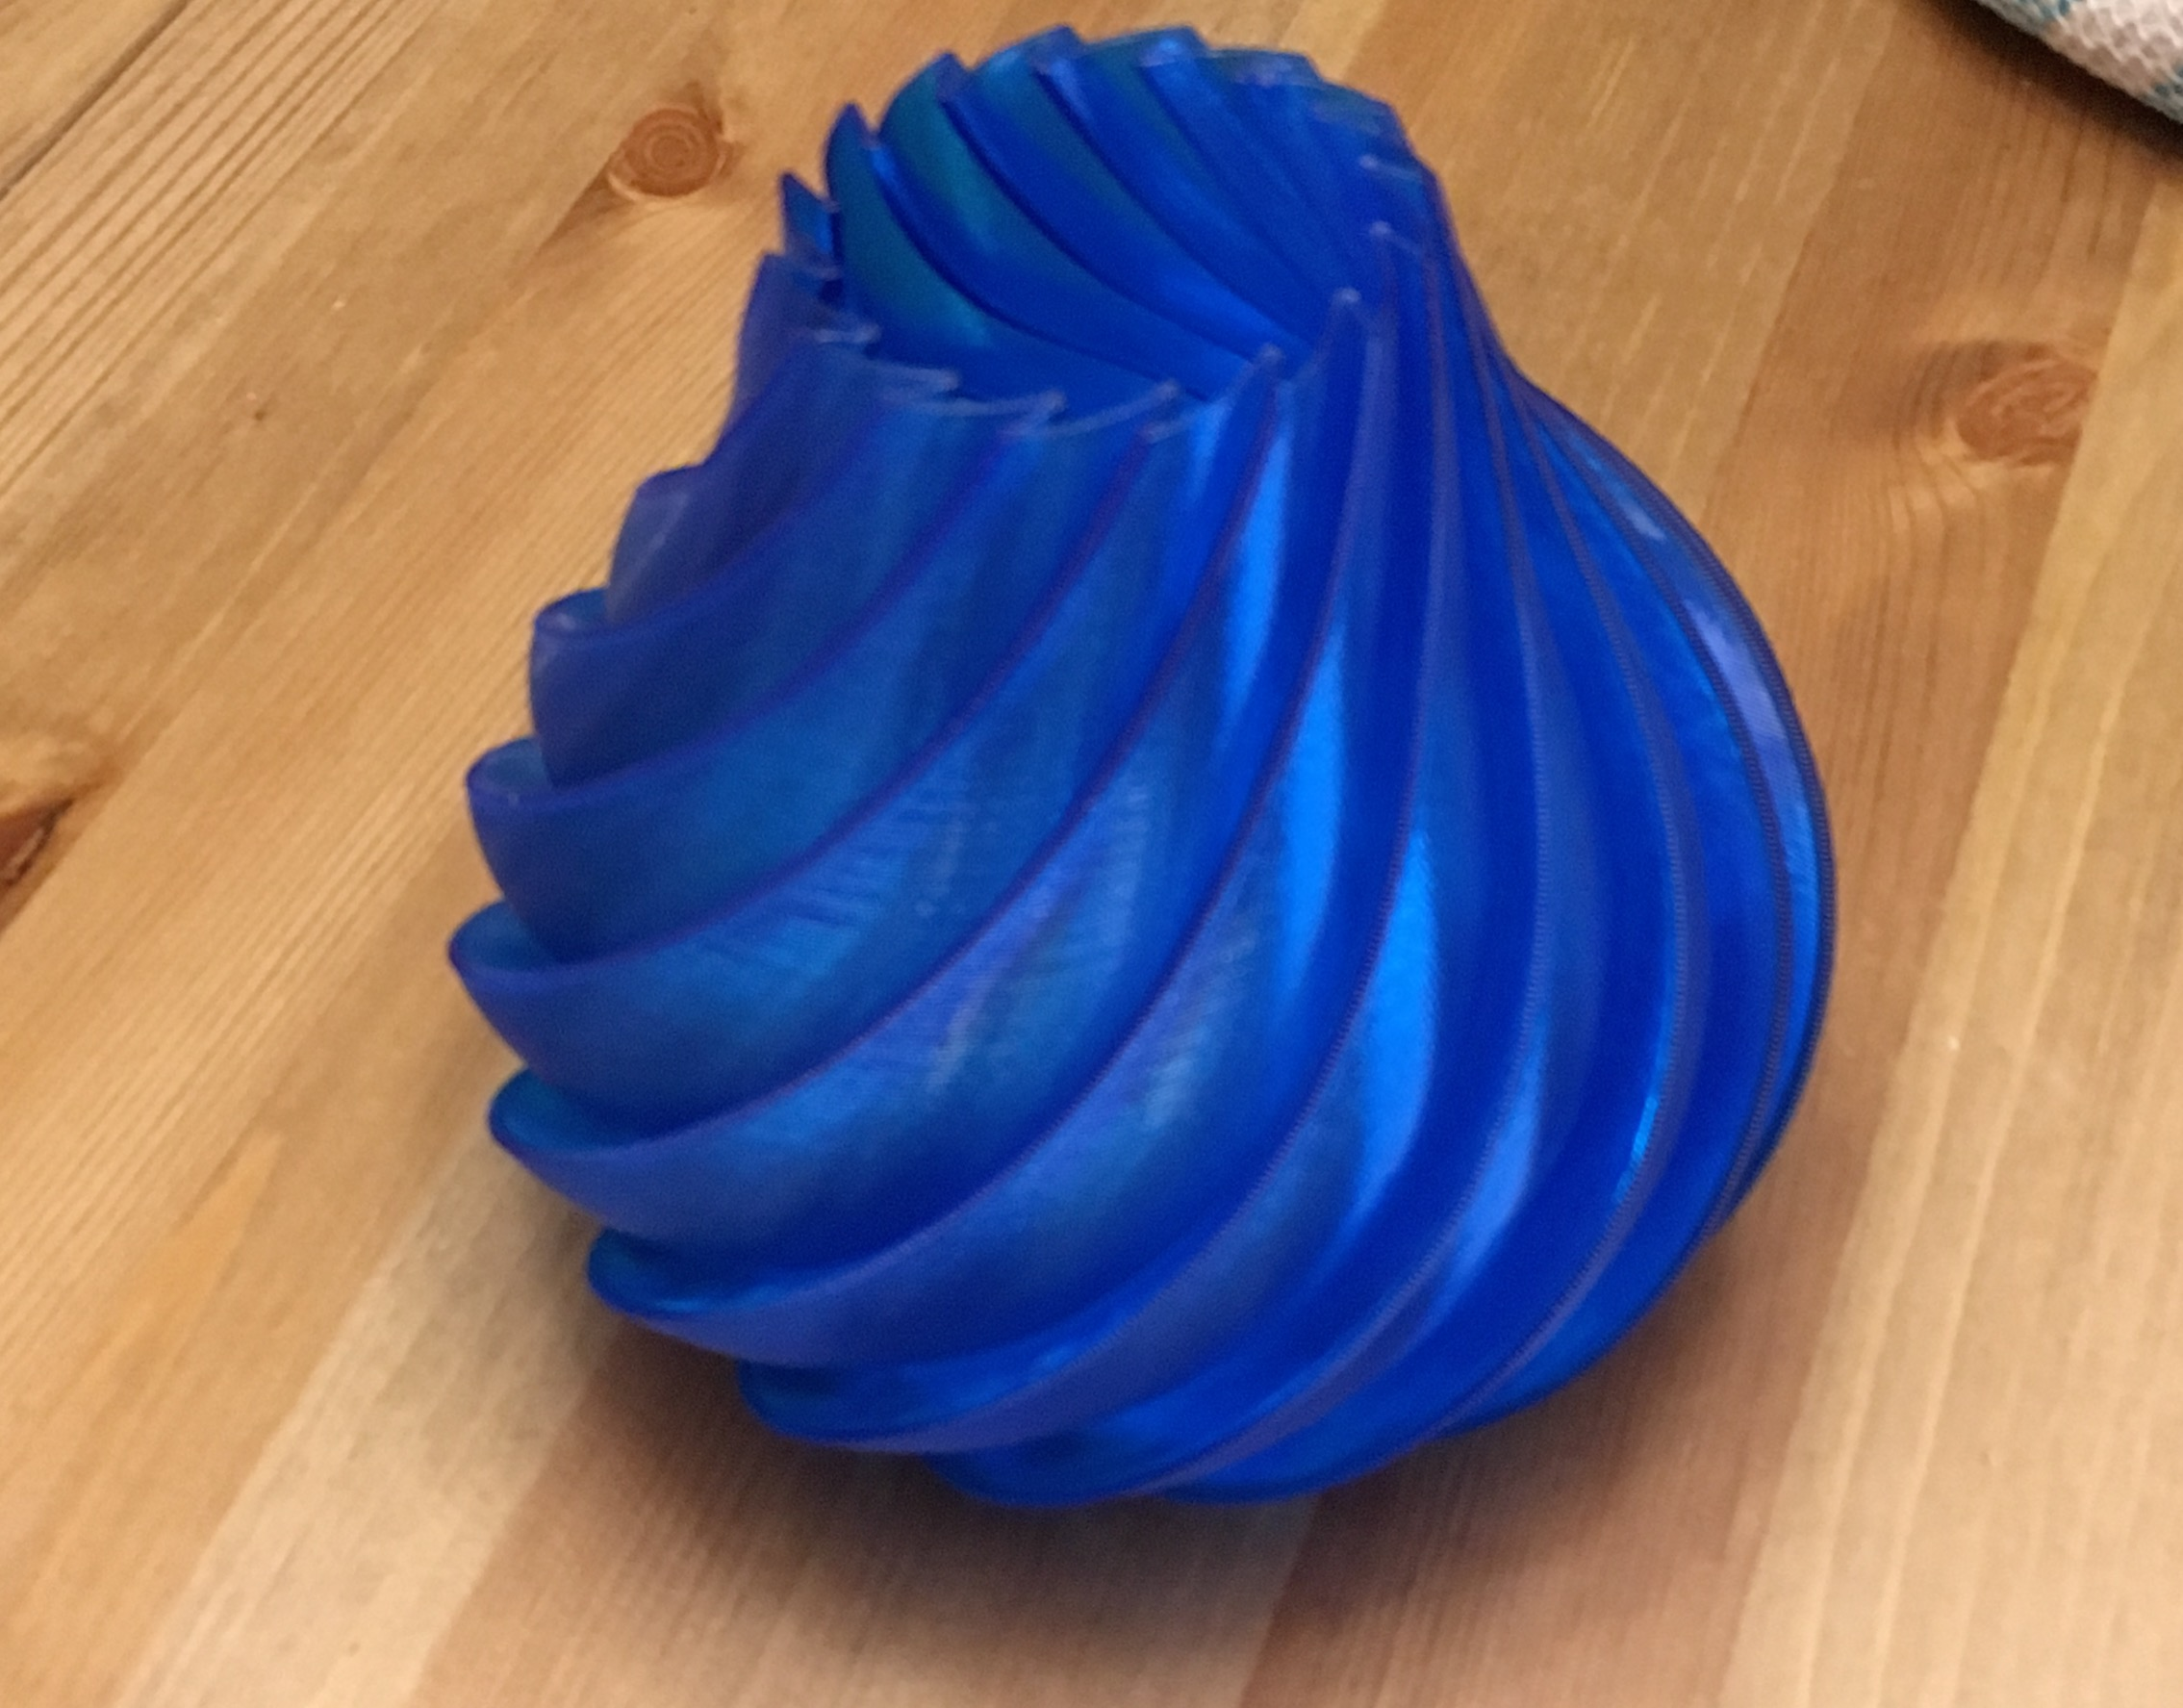 PETG: Unrivaled Layer Adhesion - PETG is great for thin walled objects such as vases. PETG layers will not separate even with very thin walls.